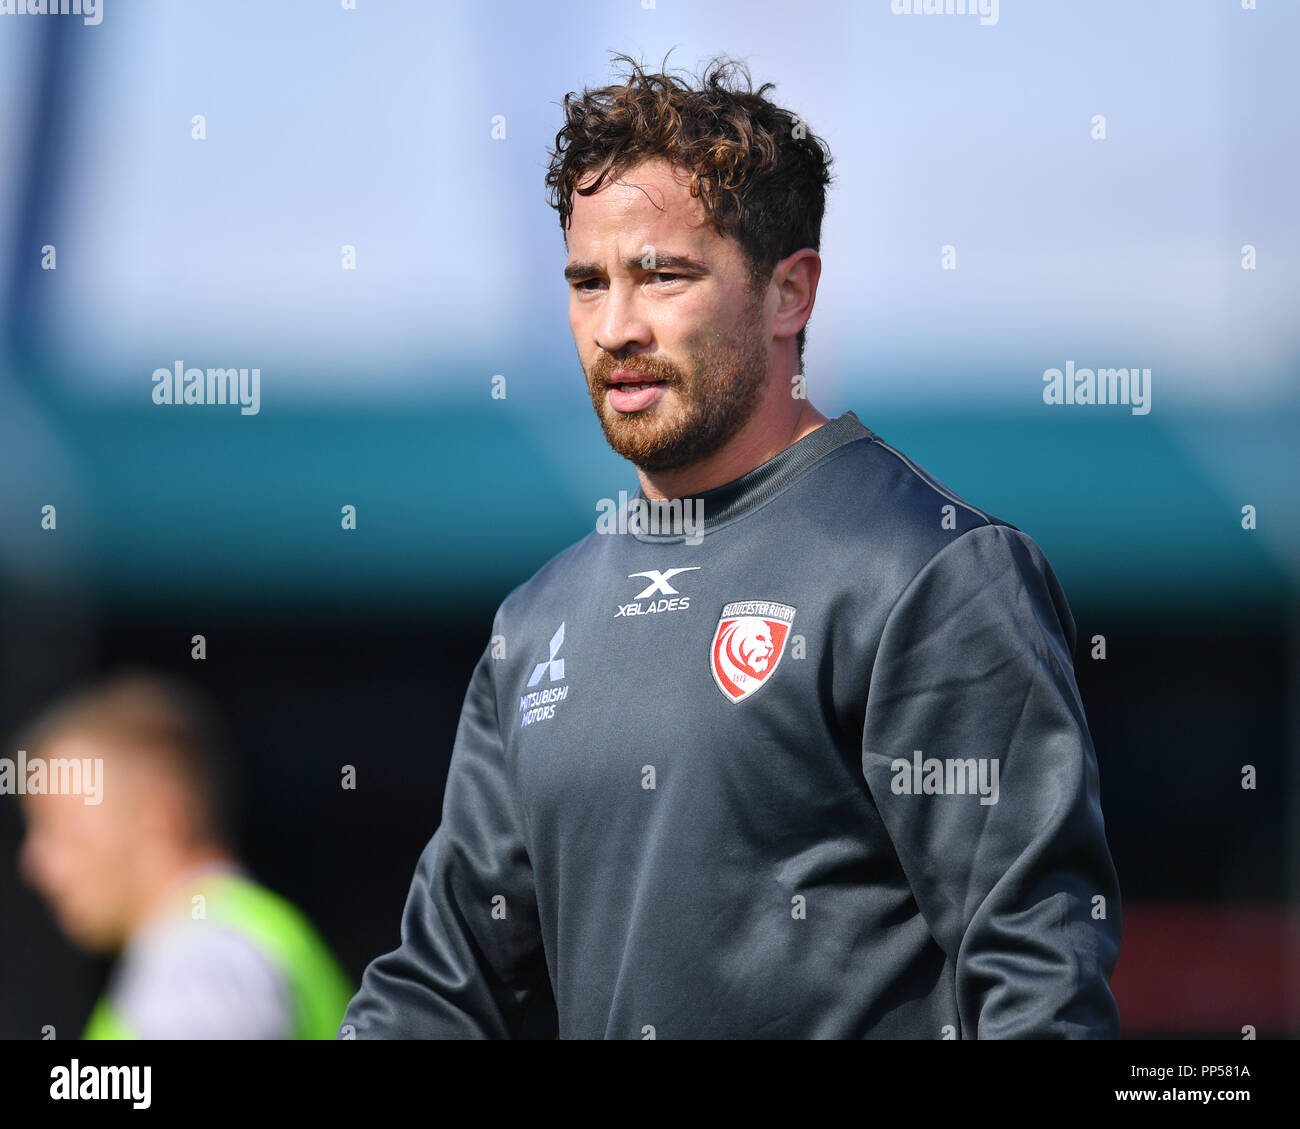 London, UK. 23rd Sept 2018. Danny Cipriani of Gloucester  during Gallagher Premiership match between Saracens and Gloucester Rugby at Allianz Park on Sunday, 23 September 2018. LONDON ENGLAND.  (Editorial use only, license required for commercial use. No use in betting, games or a single club/league/player publications.) Credit: Taka Wu/Alamy Live News Stock Photo